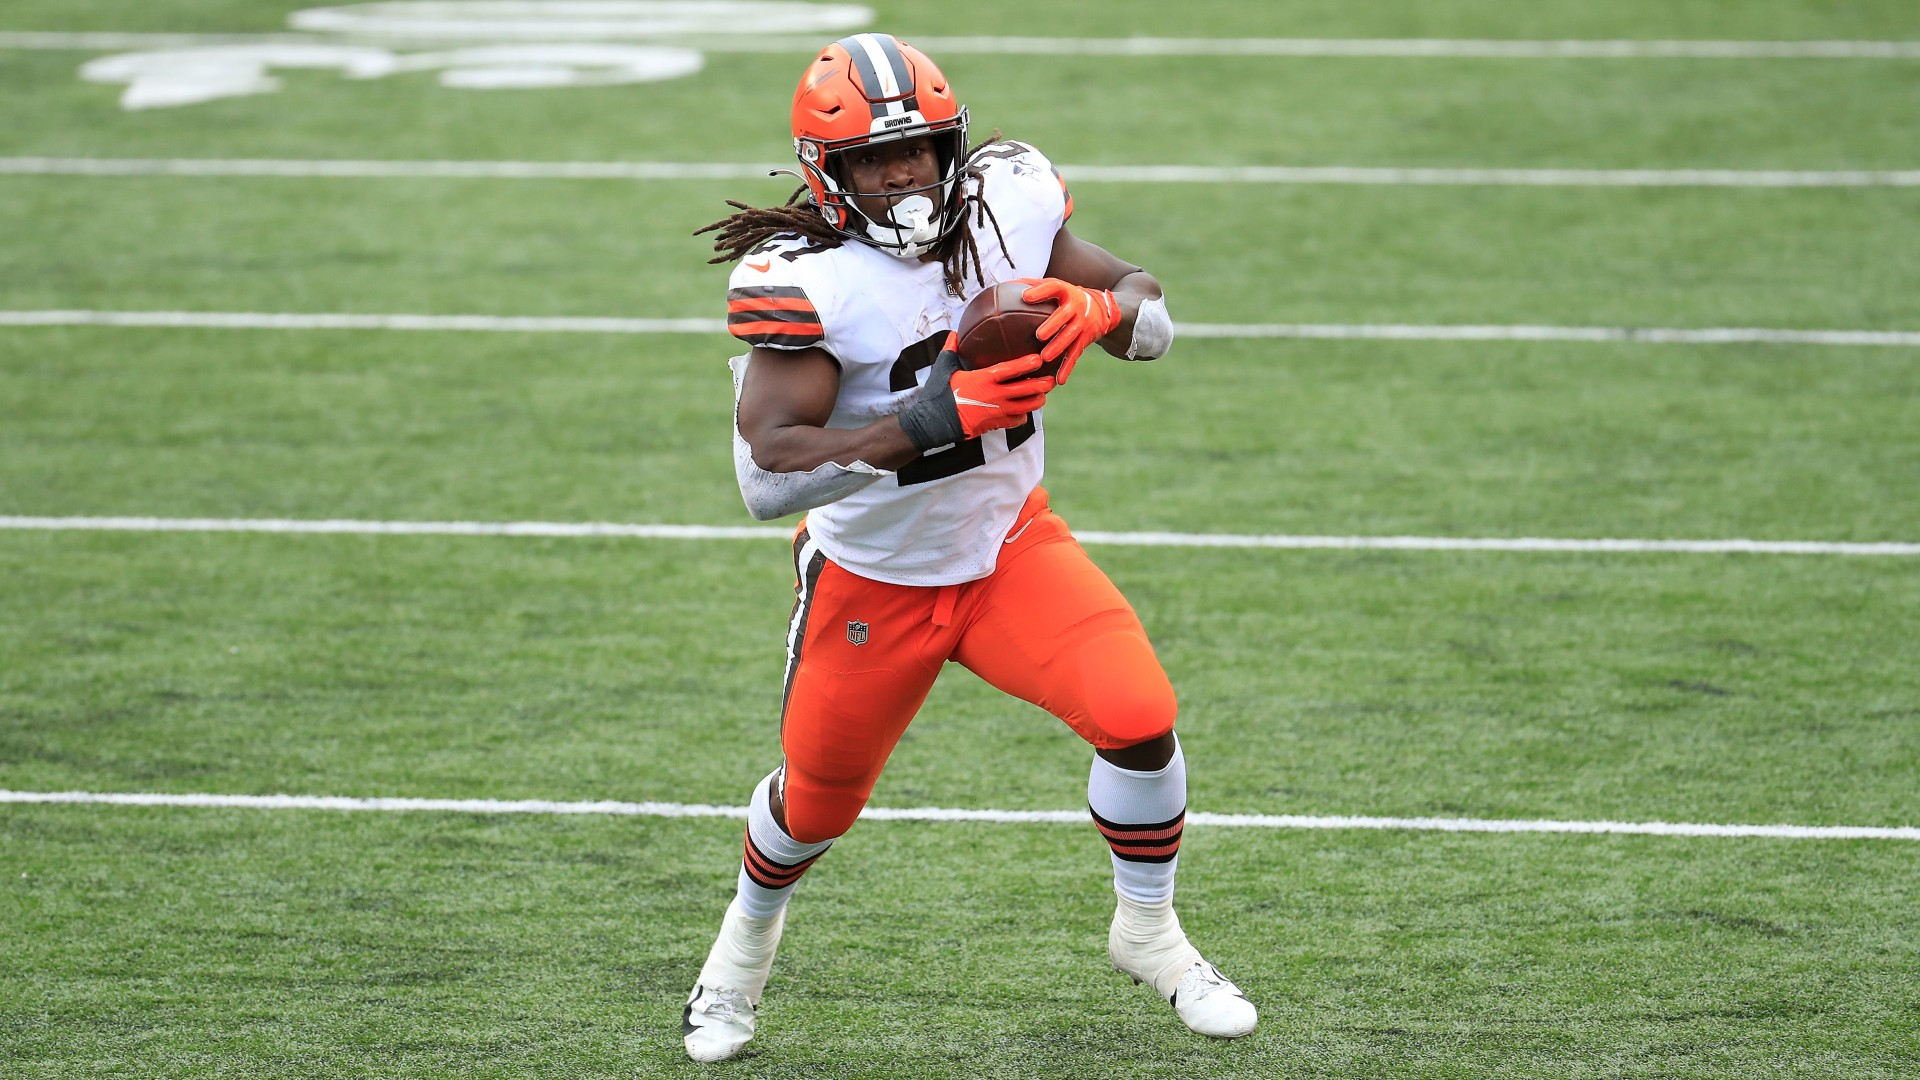 Kareem Hunt's second chance with Browns shouldn't make Chiefs reunion  'personal'   Sporting News